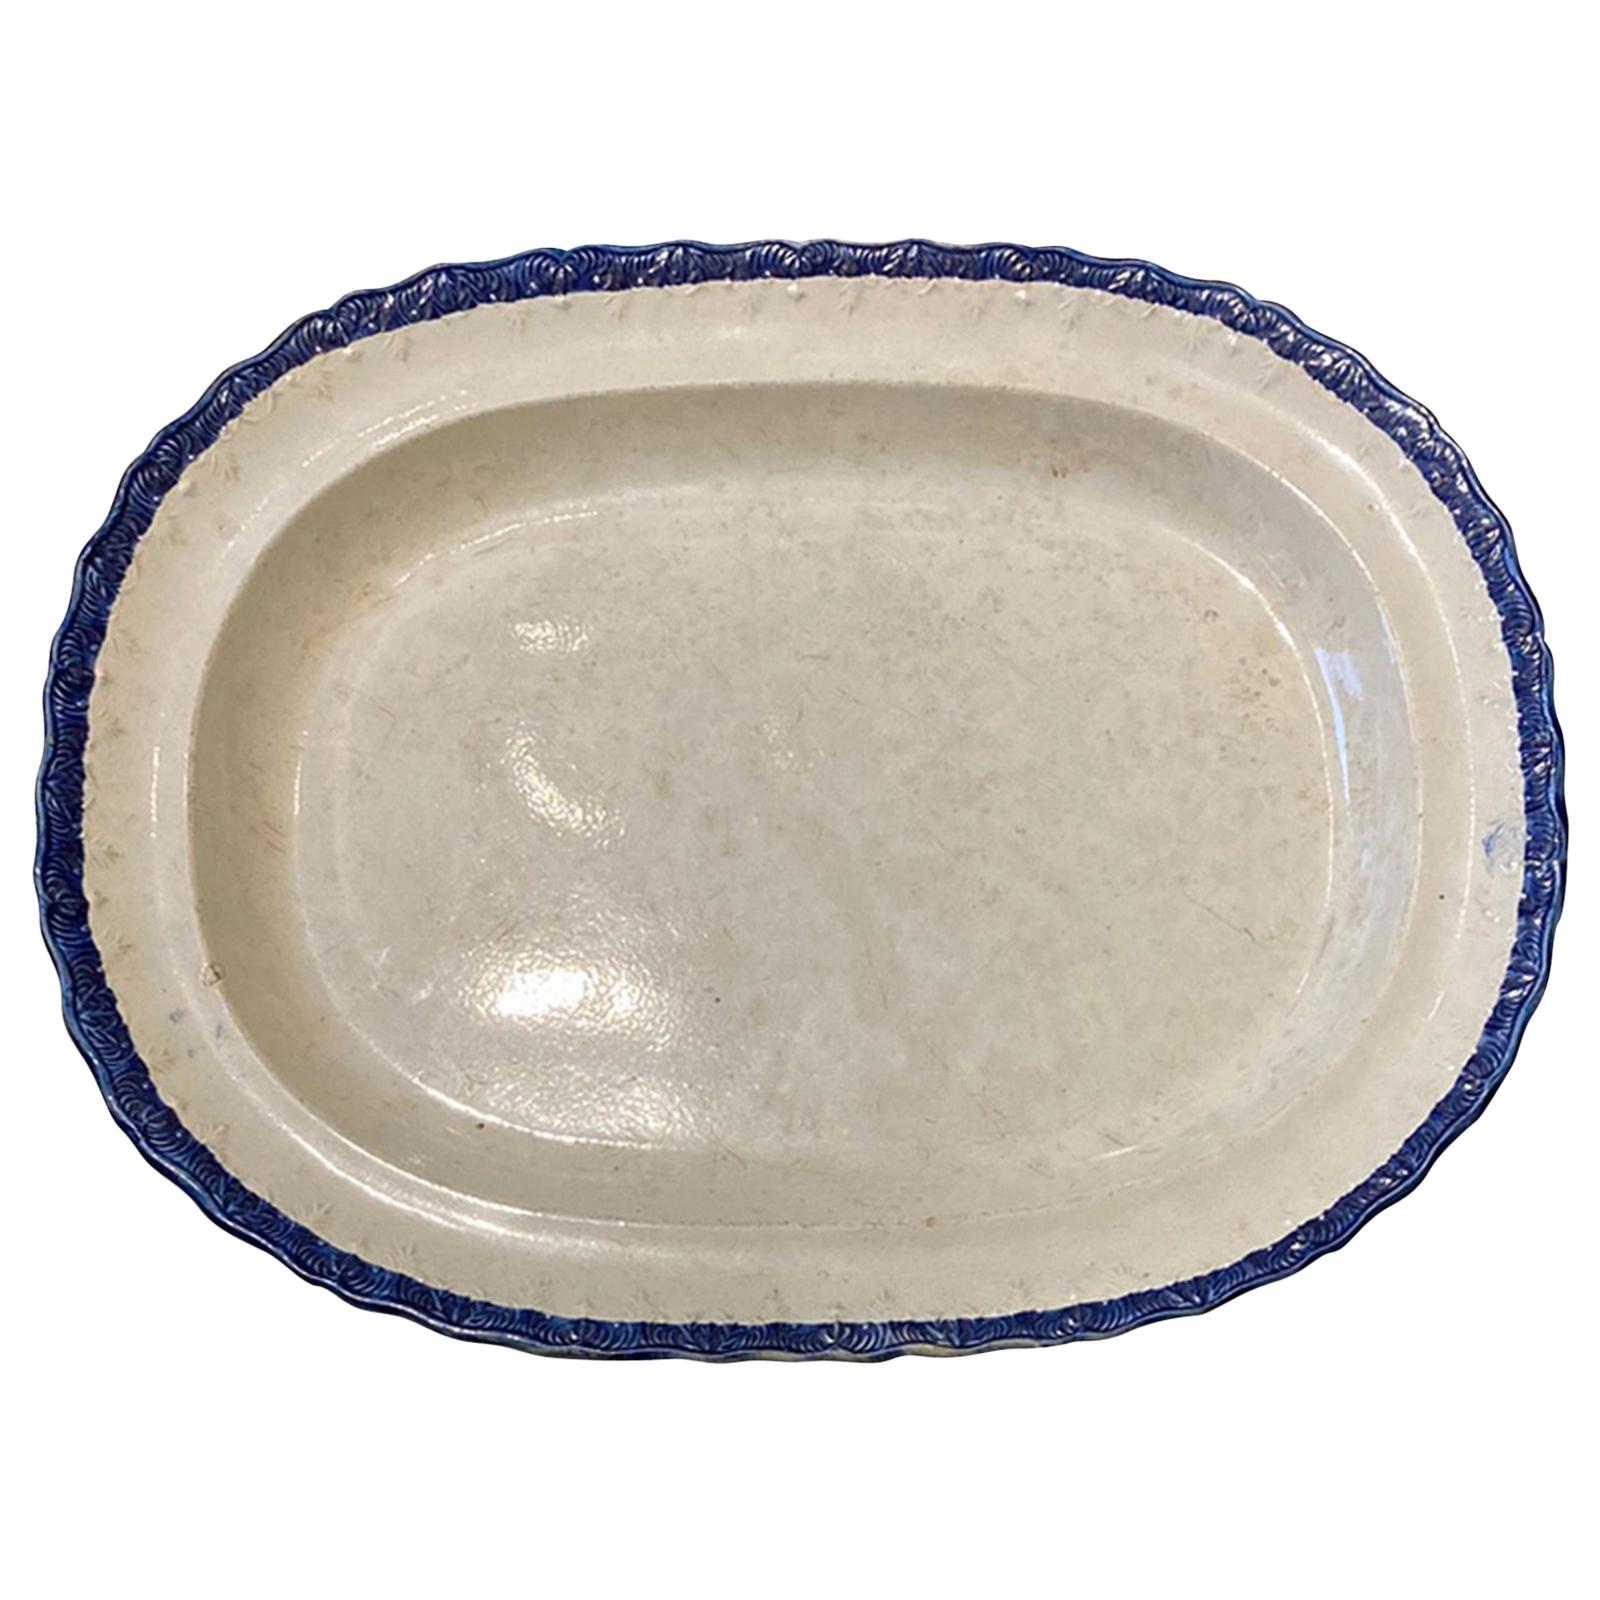 English Featherware Platter, Unmarked, circa 1830